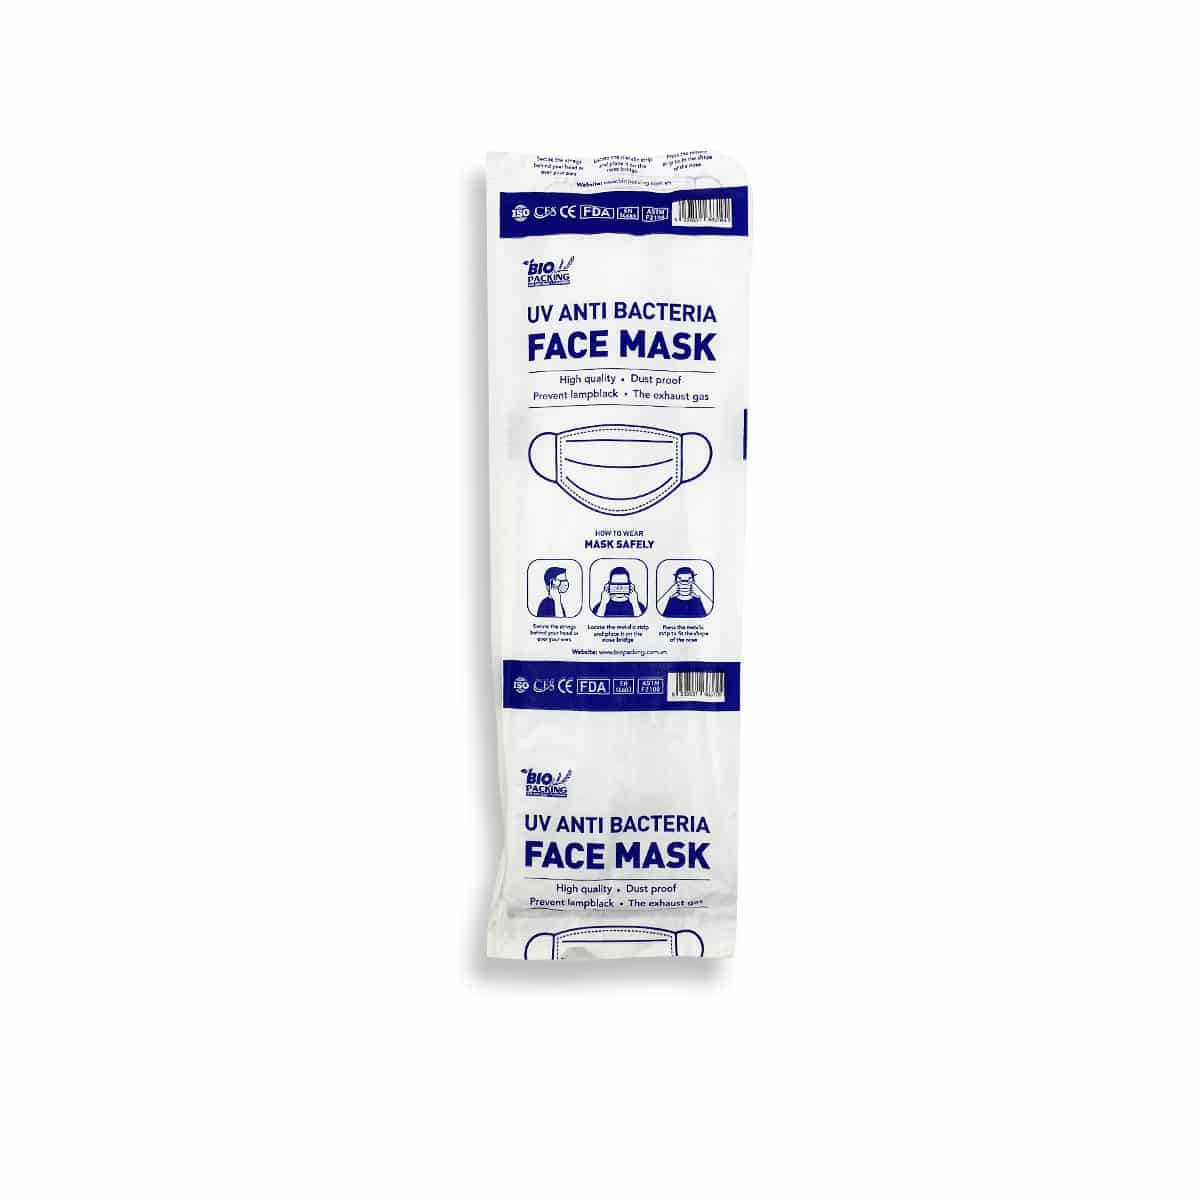 [Mask] Bright White Masks 4-Ply - Individually Wrapped -BioPacking 2